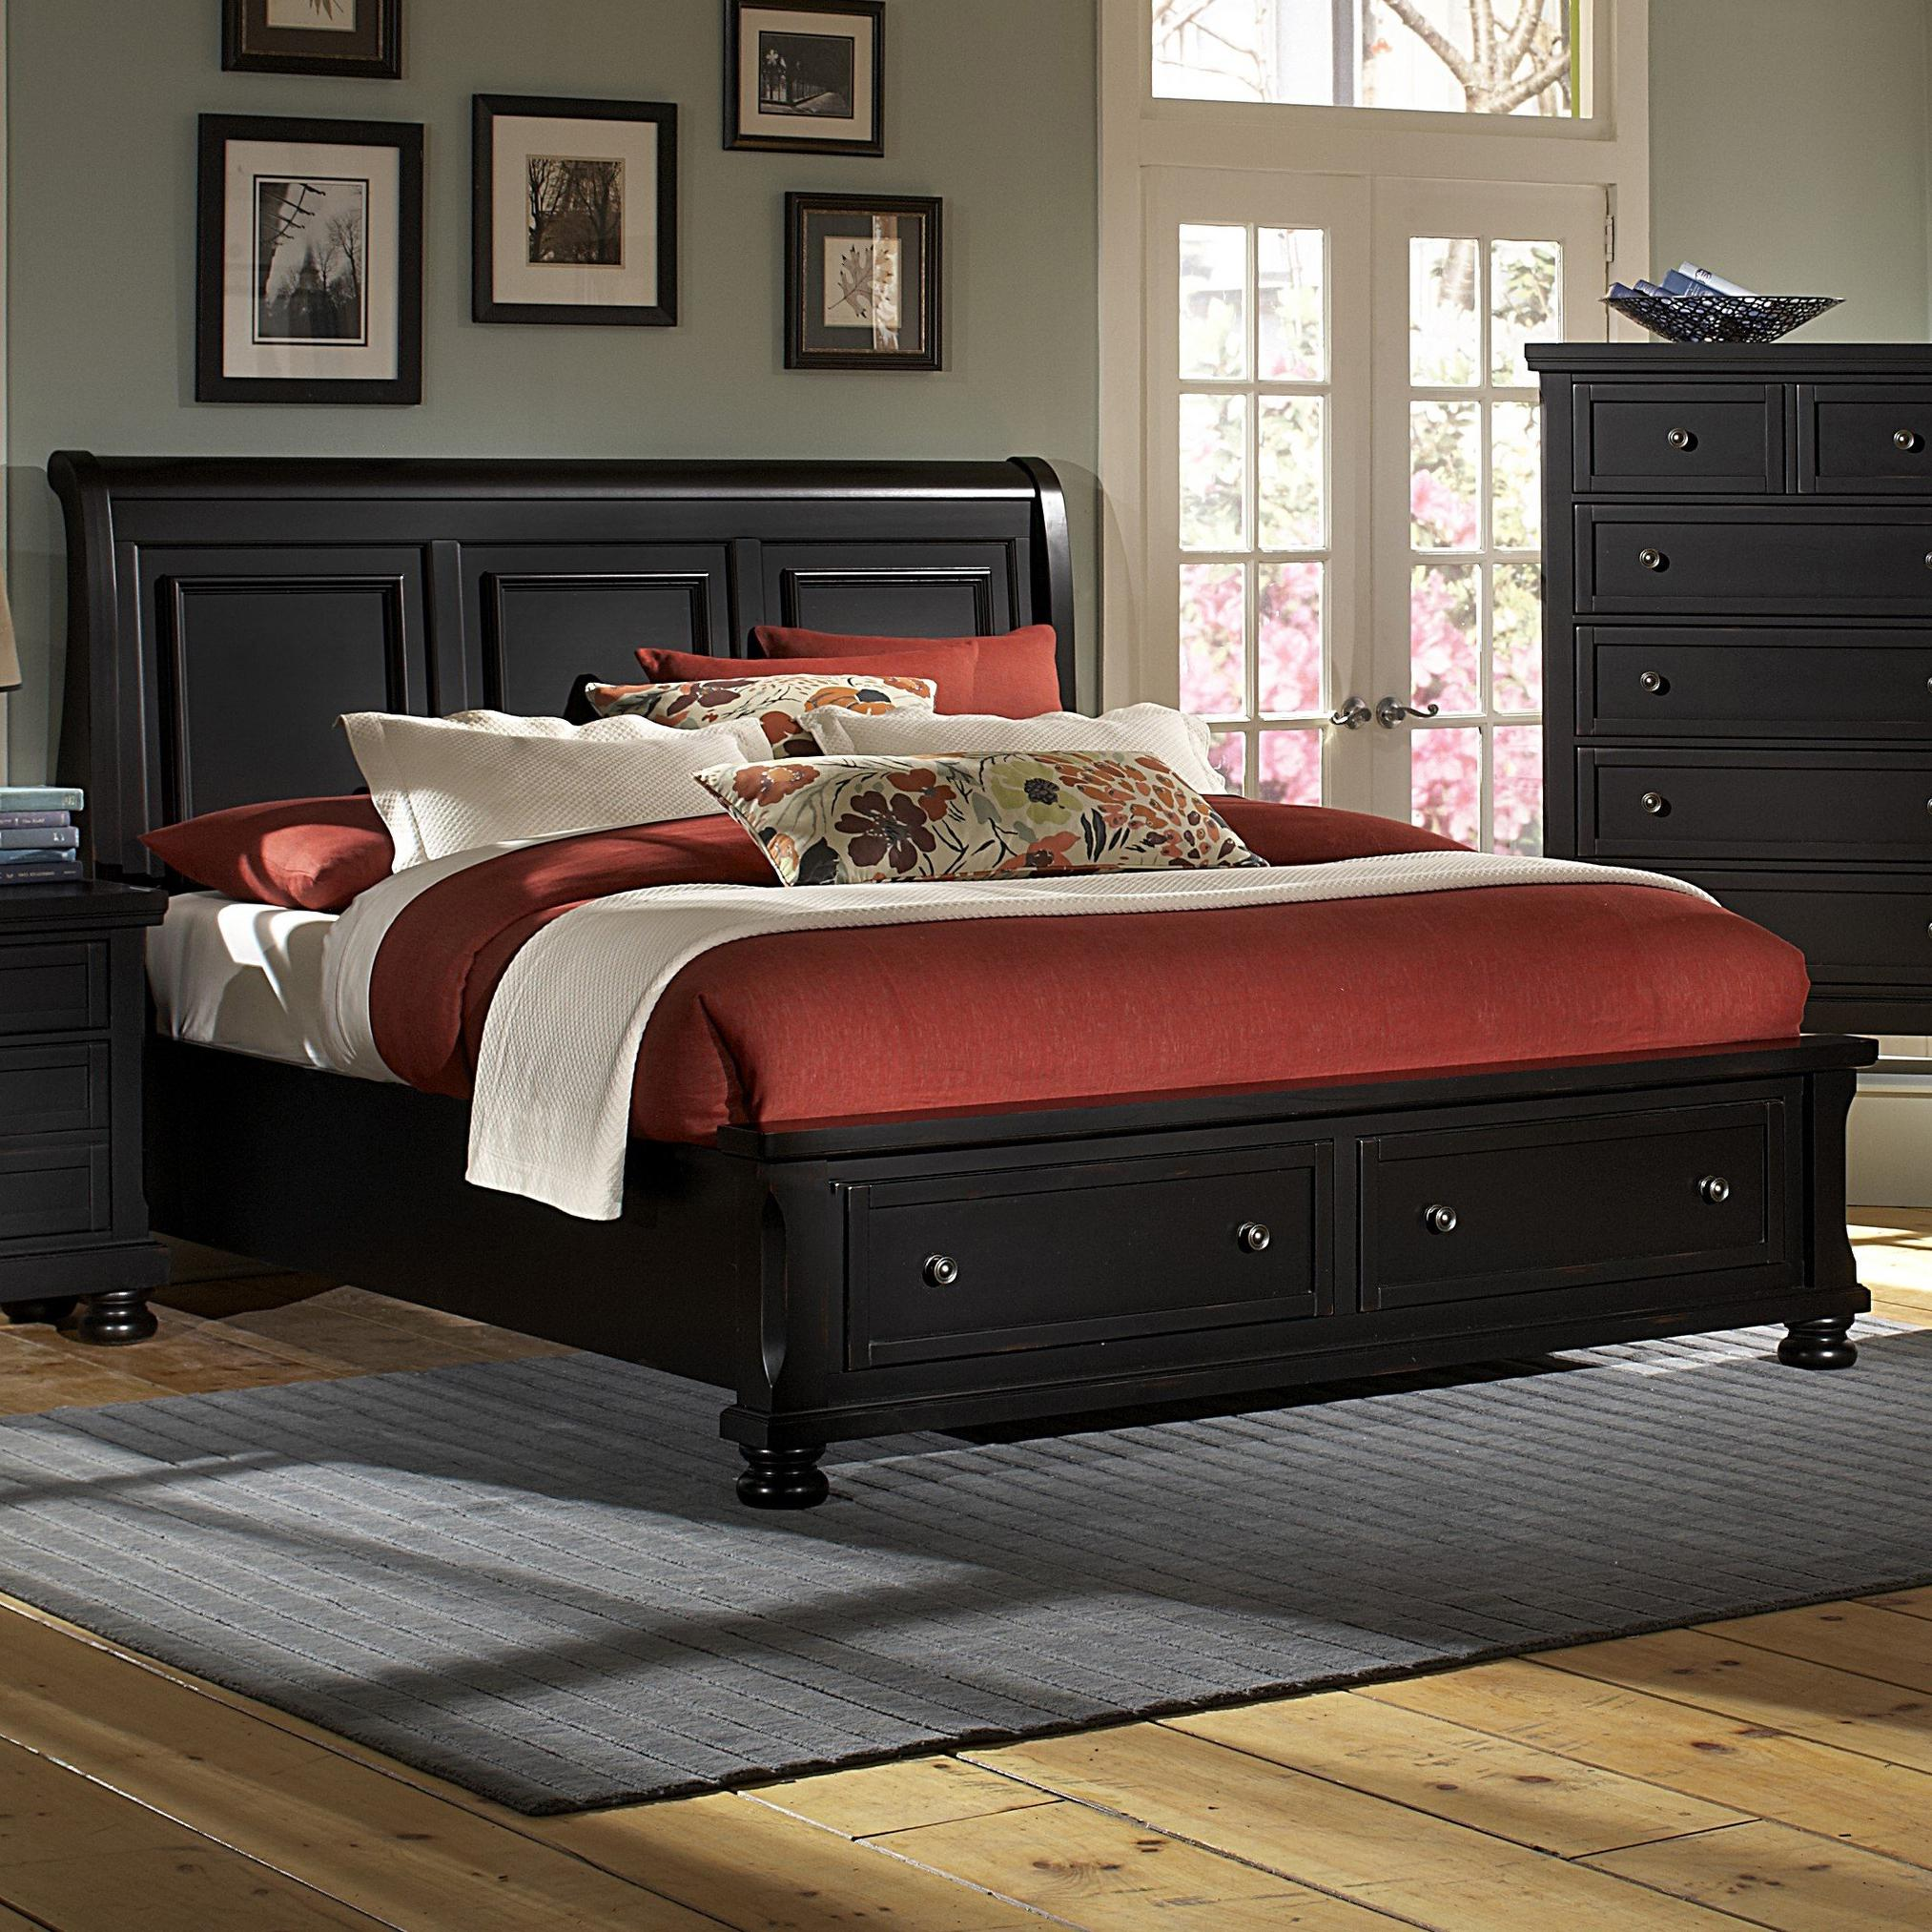 Vaughan Bassett Reflections King Storage Bed with Sleigh Headboard - Item Number: 534-663+066B+502+666T